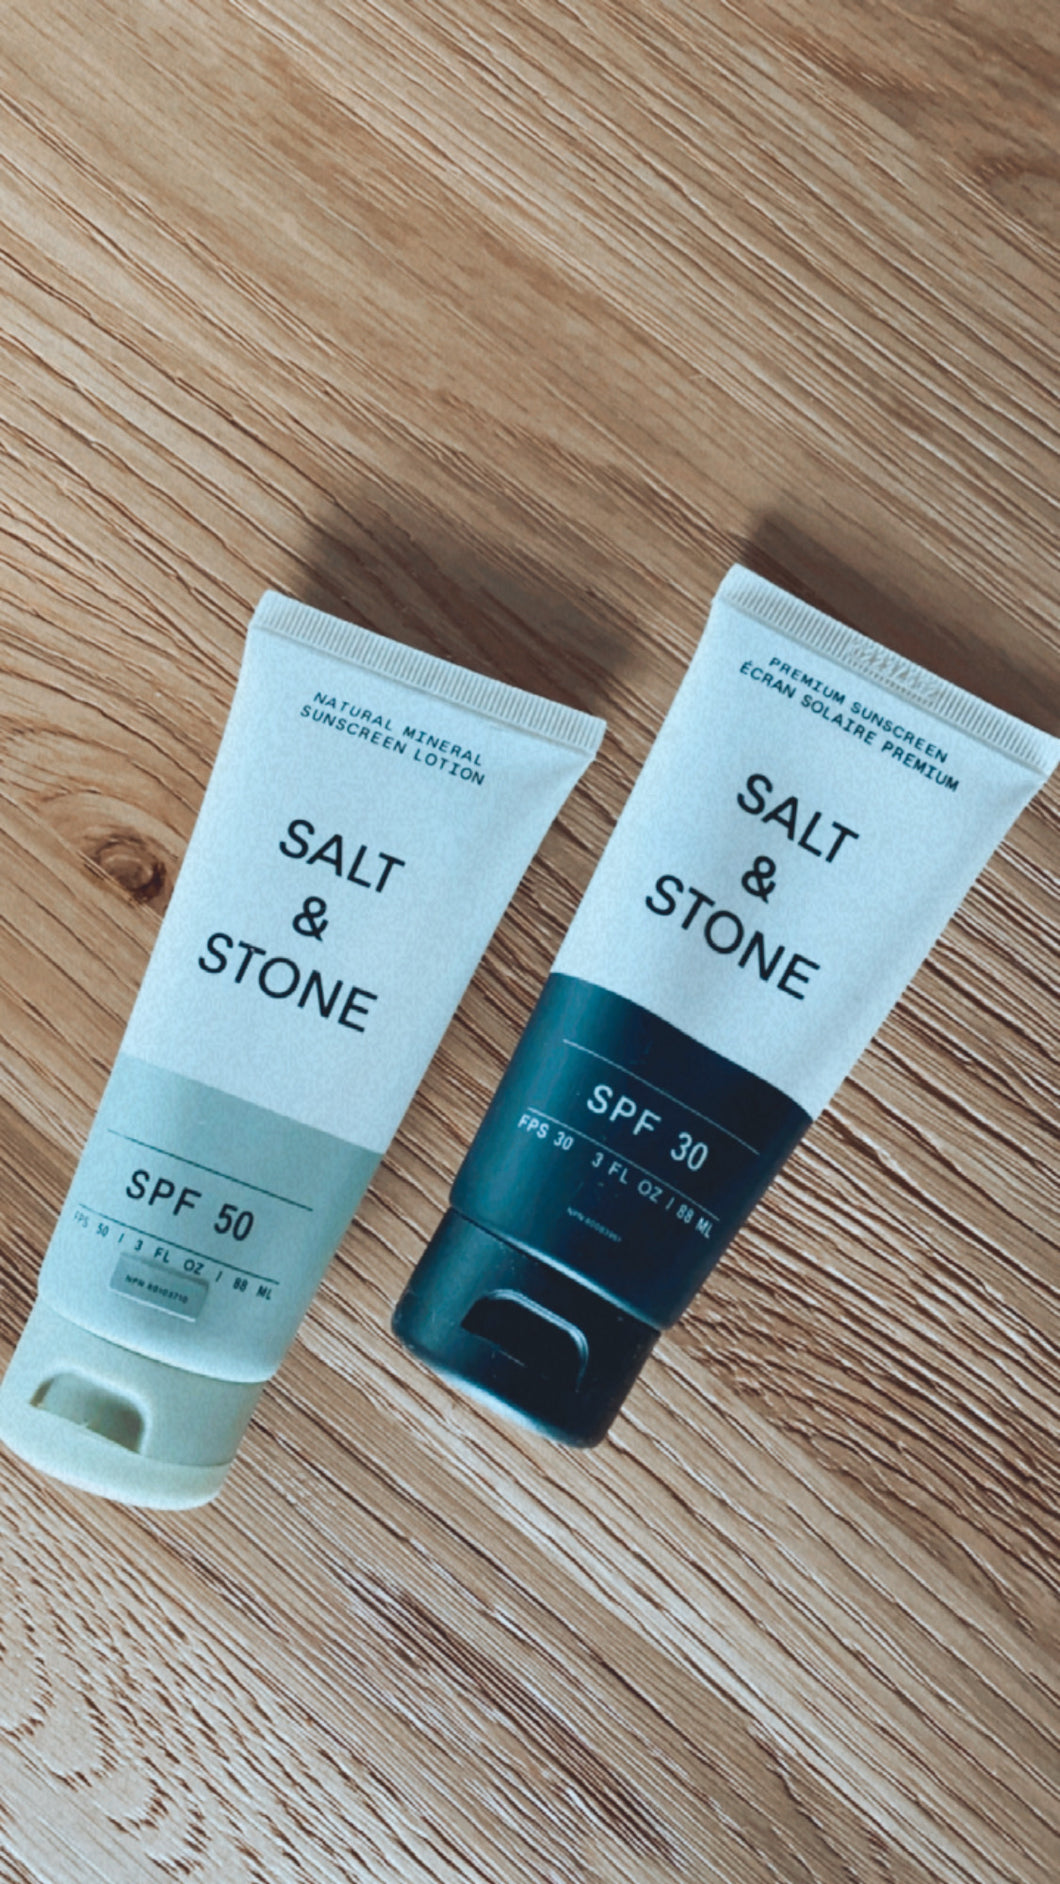 Salt + Stone Sunscreen Products